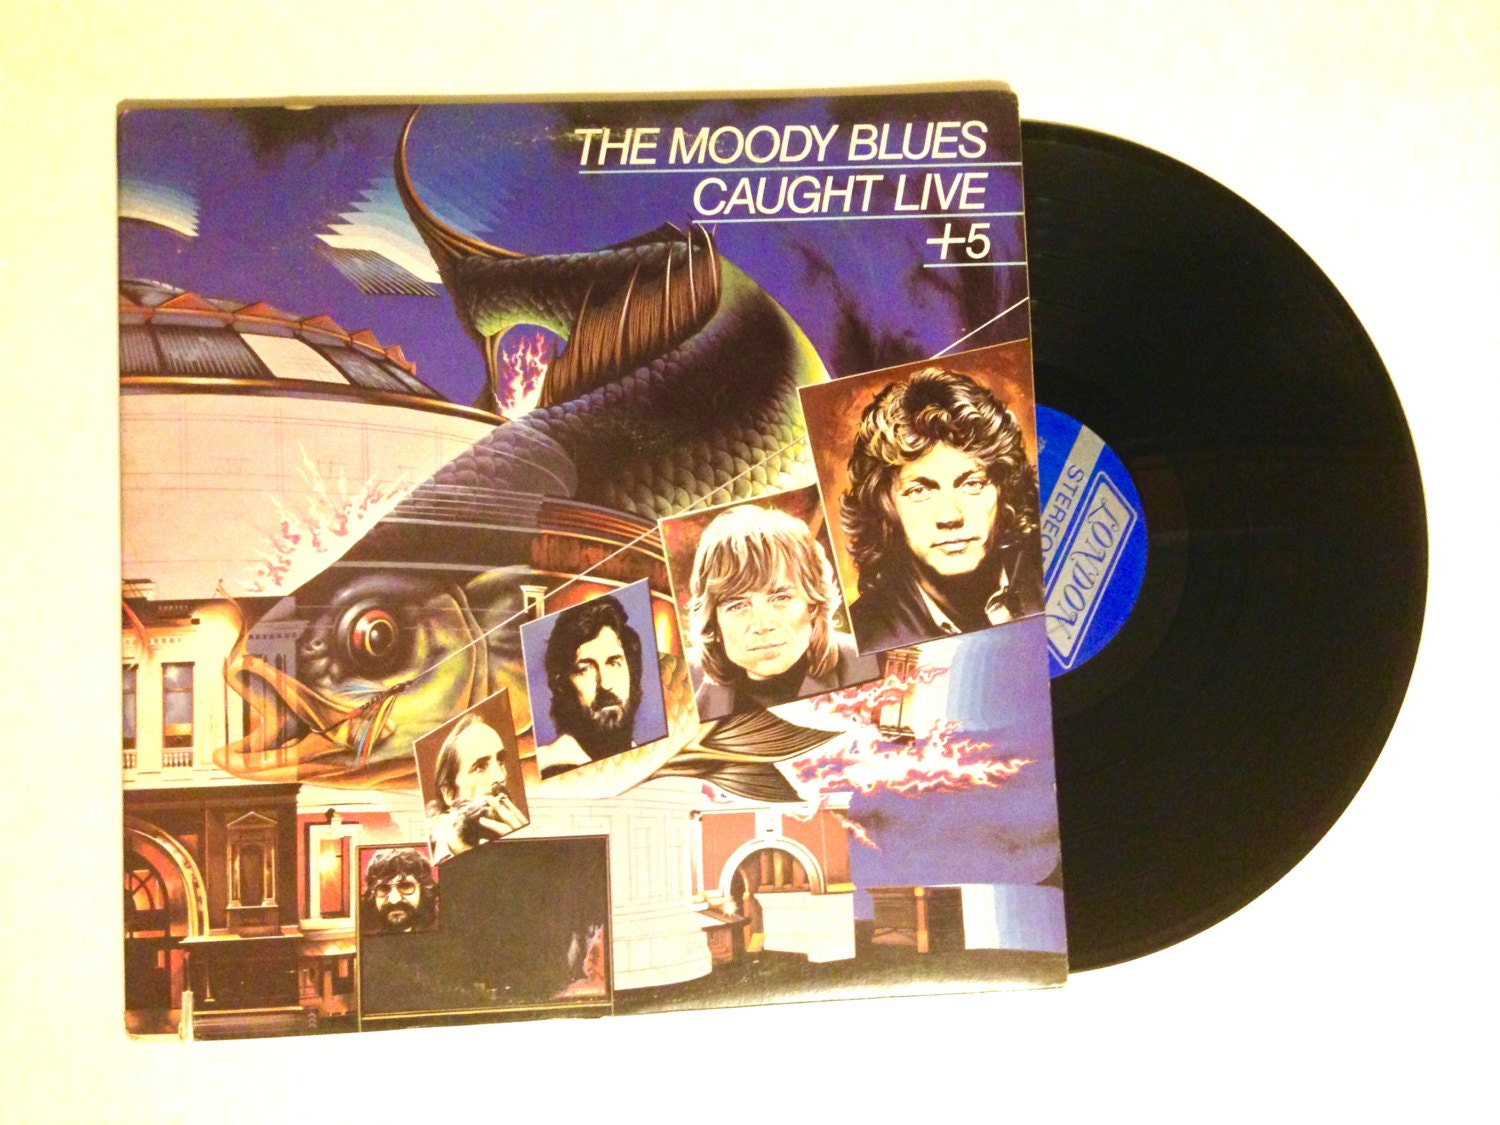 The Moody Blues Caught Live 5